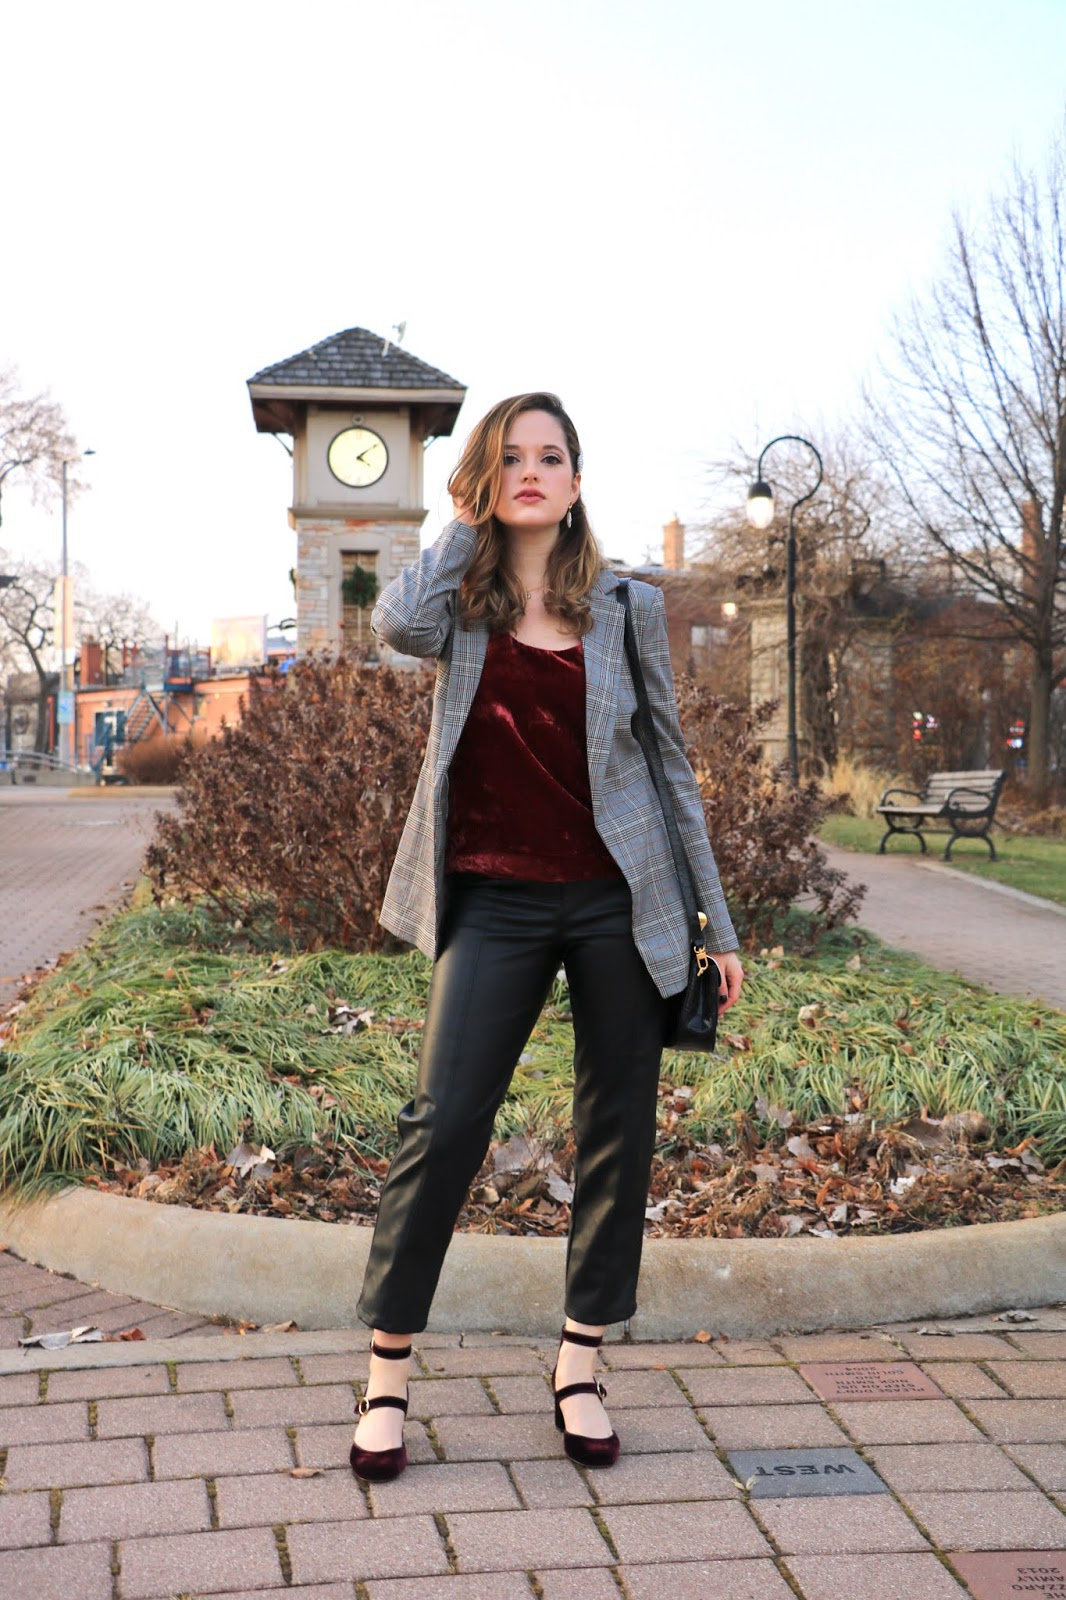 Nyc fashion blogger Kathleen Harper's Valentine's Day outfit idea.